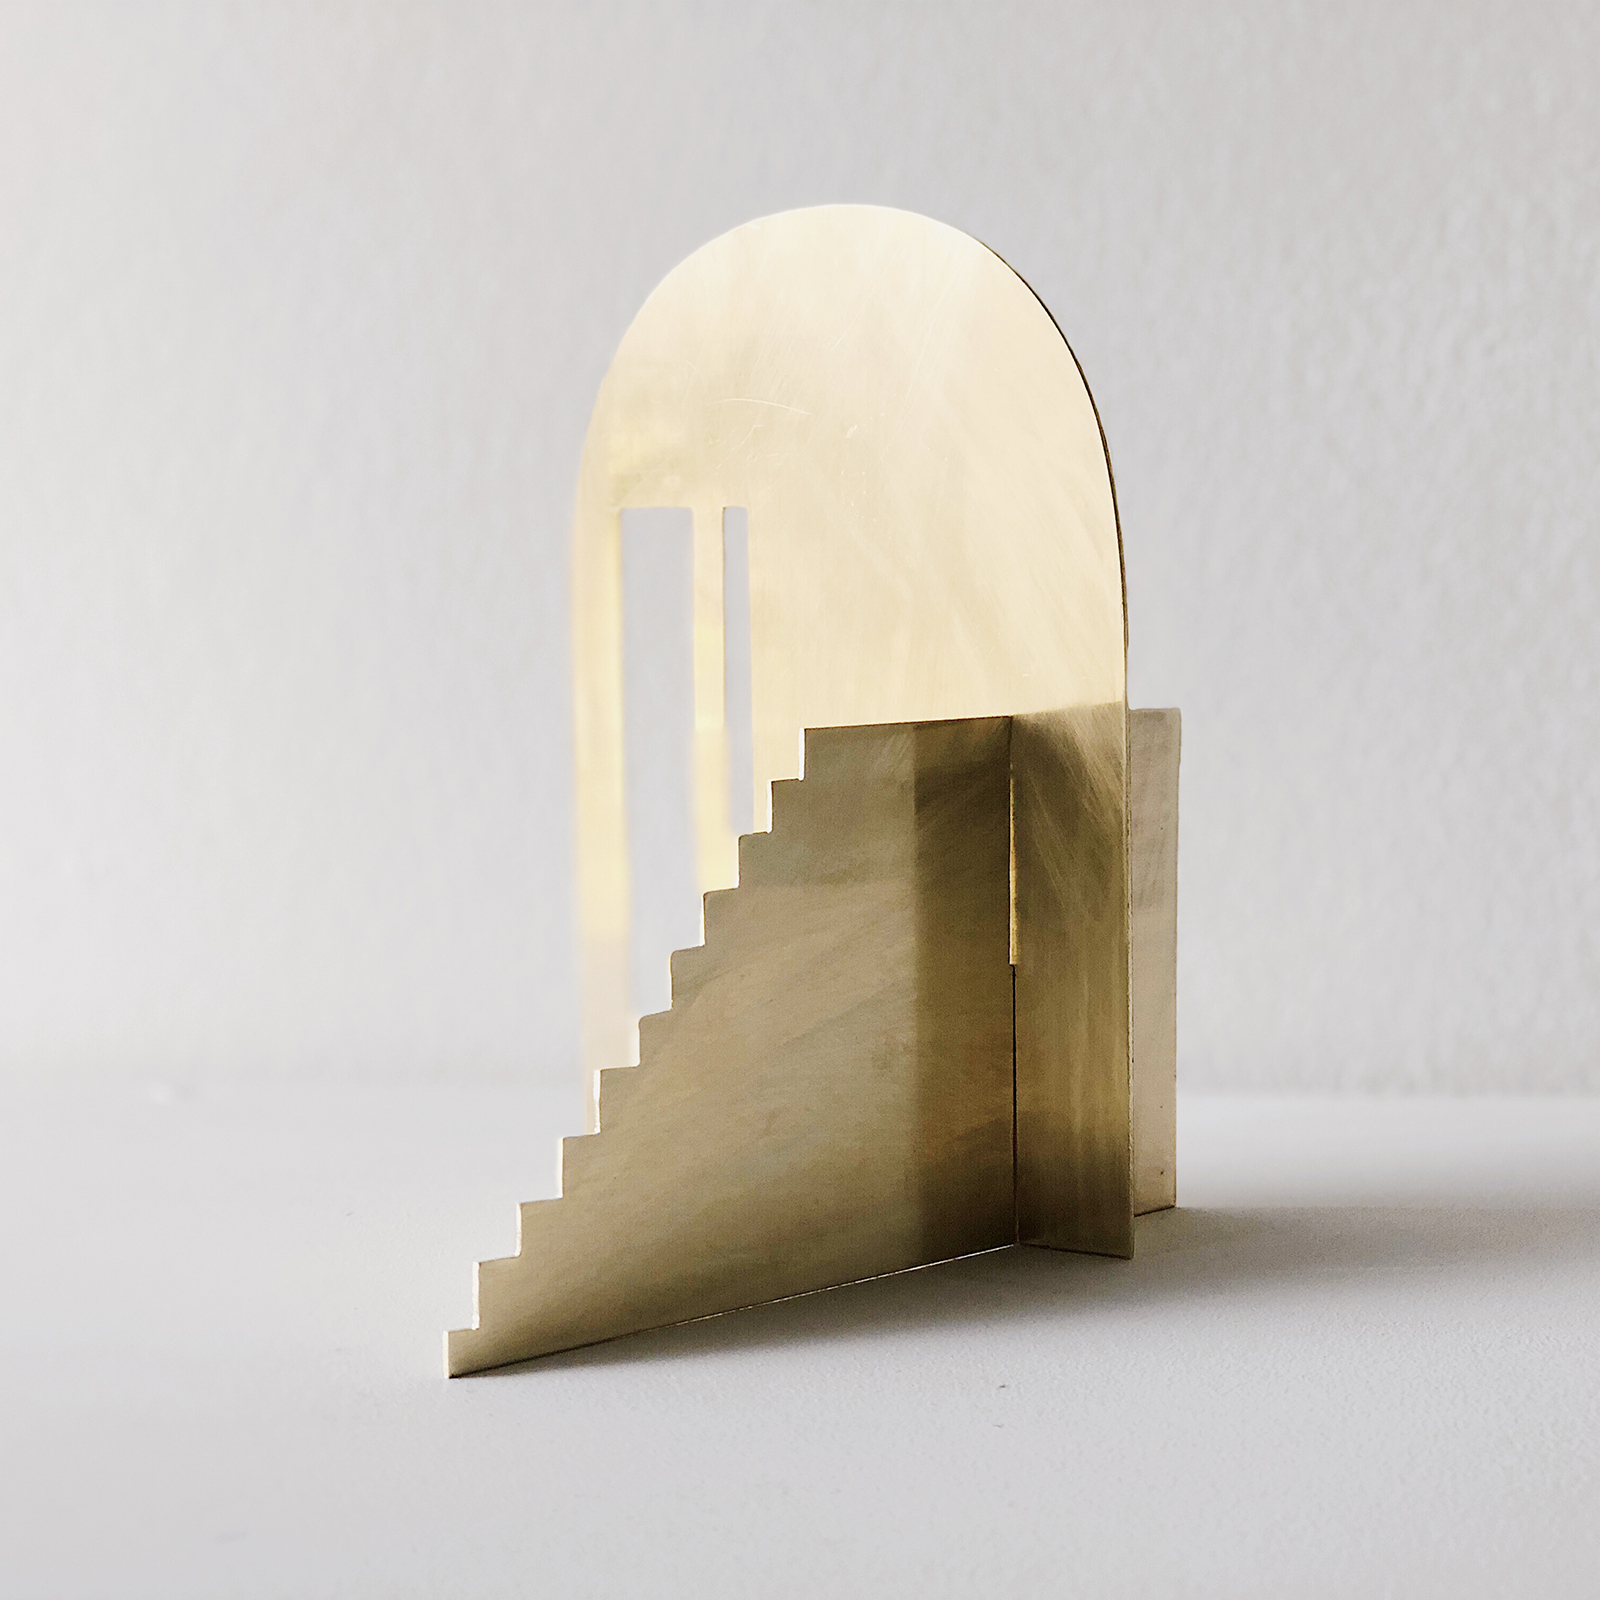 Fragmented Space Sculpture In Brass By Hearth Collective (alichia Van Rhijn) 04